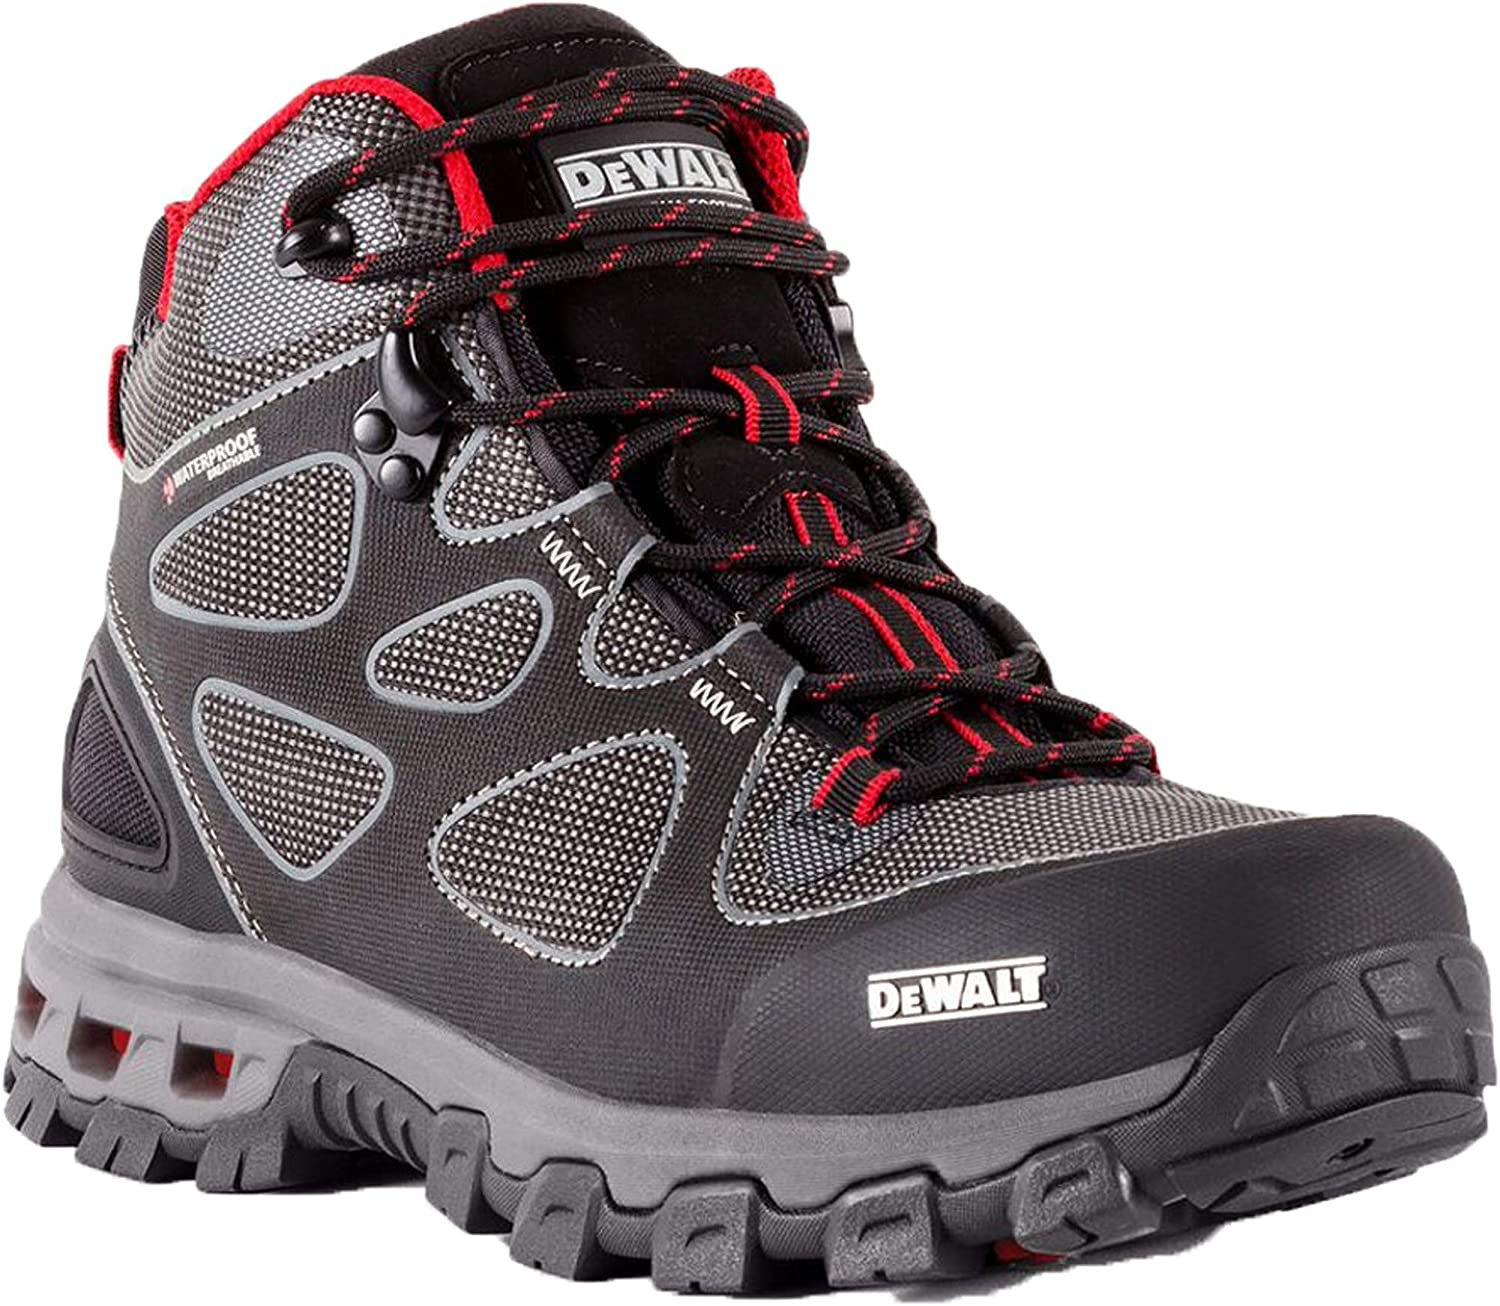 Dewalt Men's Lithium Steel Toe Waterproof Boot, Style NO. DXWP10003 (7 D(M) US, Lithium Red)